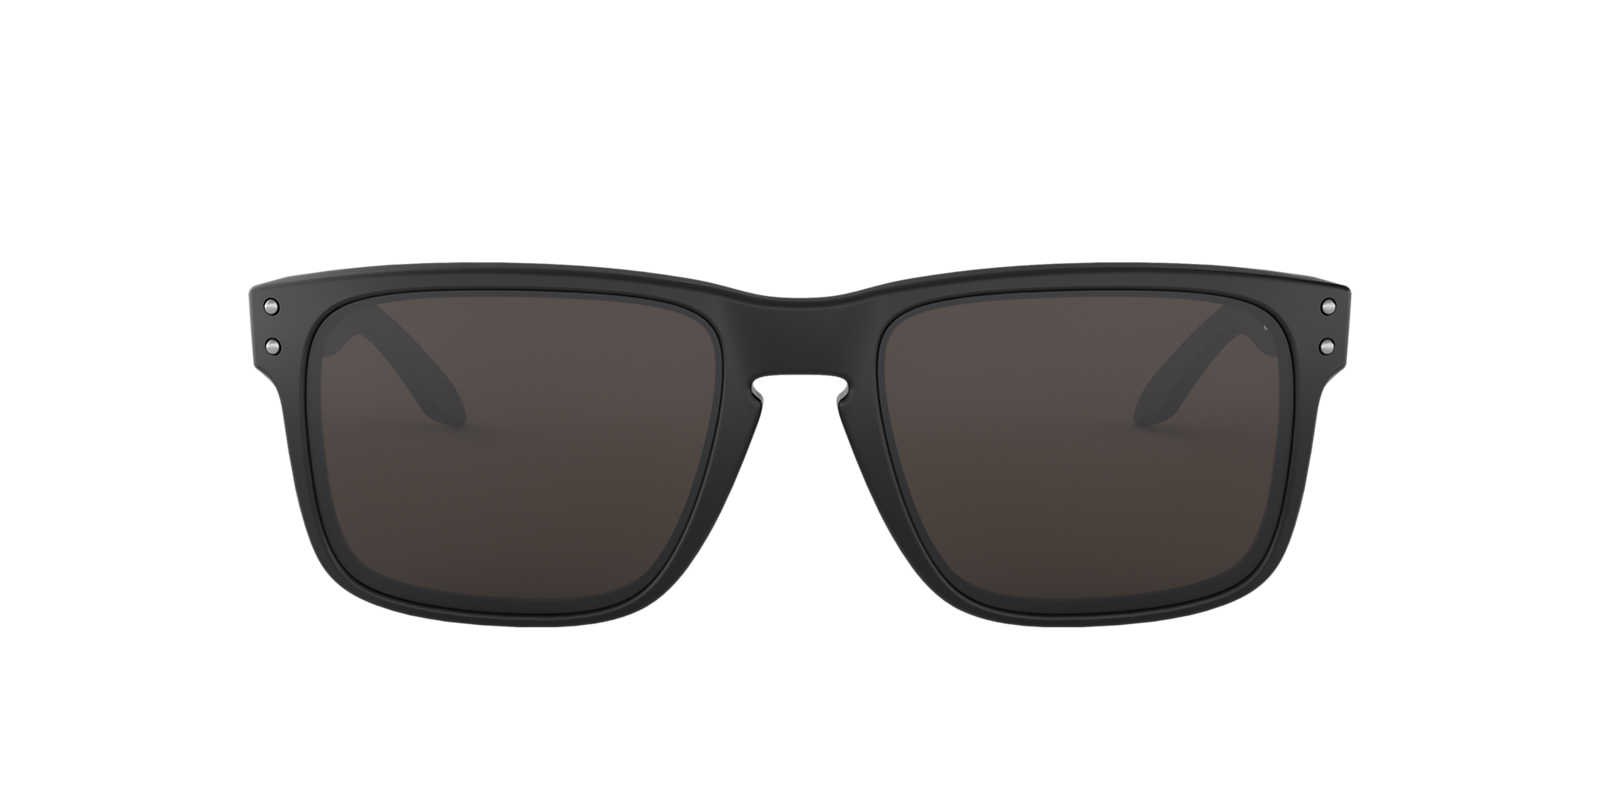 new oakley mens sunglasses  Oakley Sunglasses - Designer Sunglasses